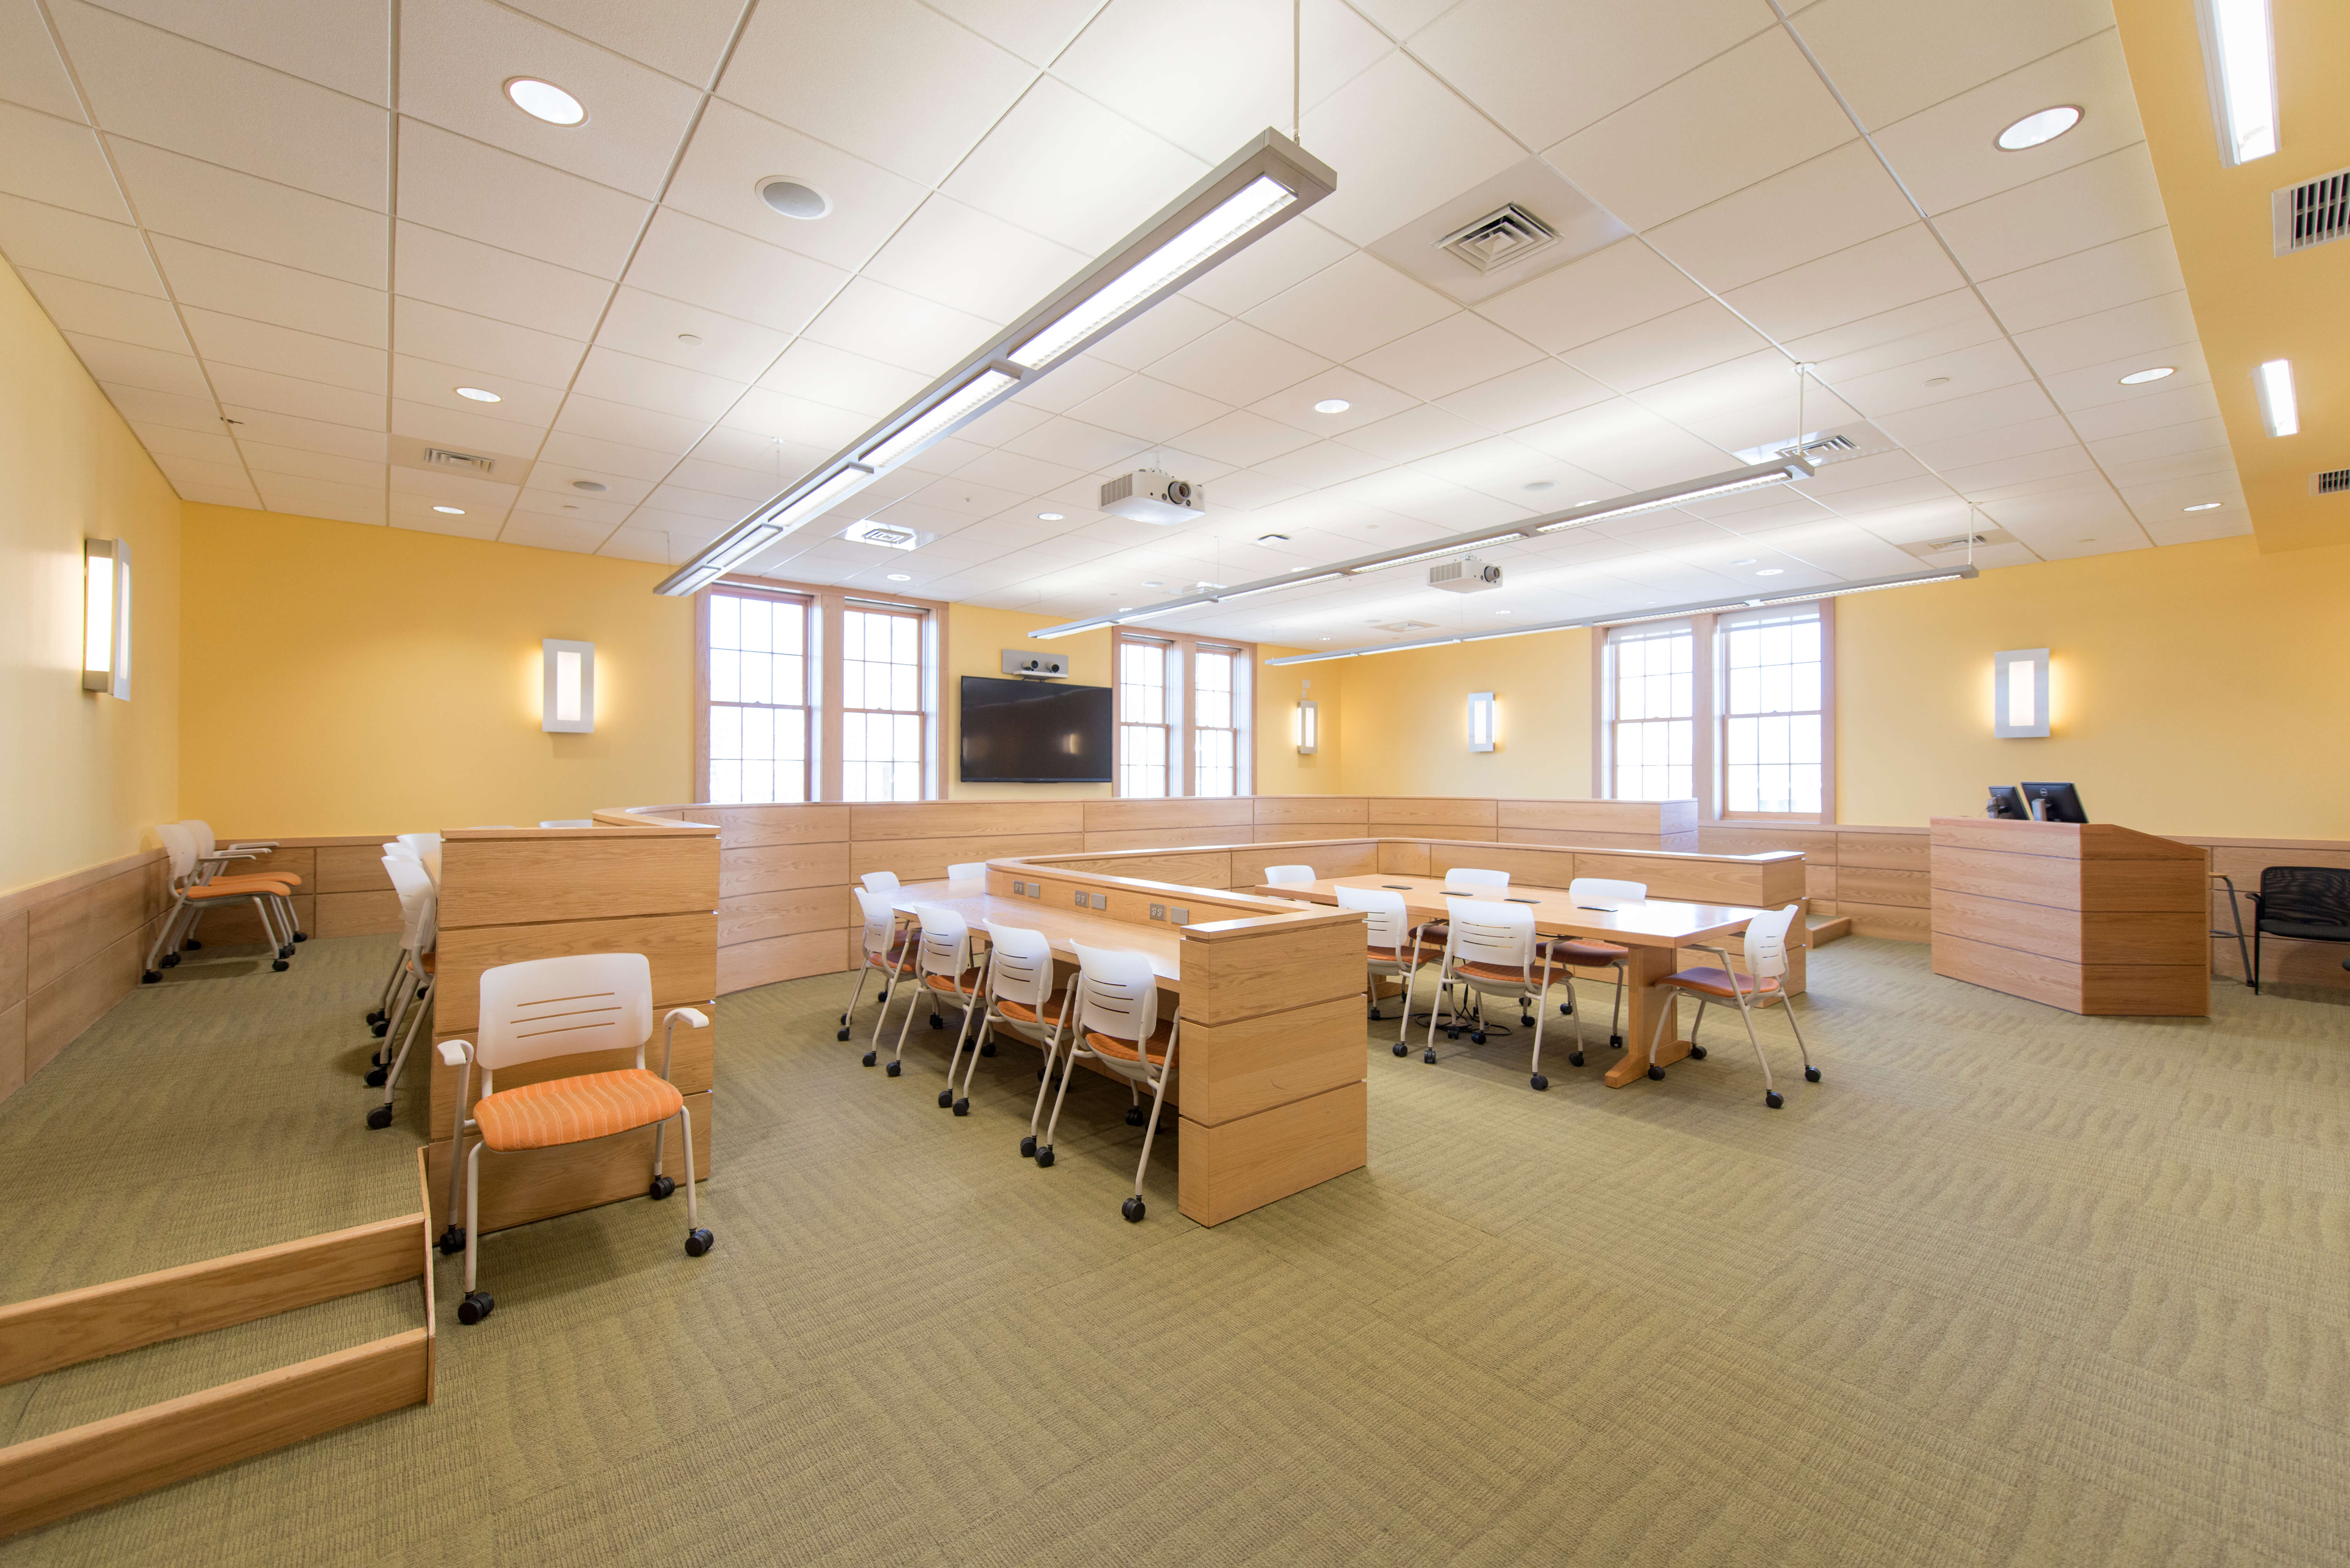 Photo of a classroom in the Lyons Center